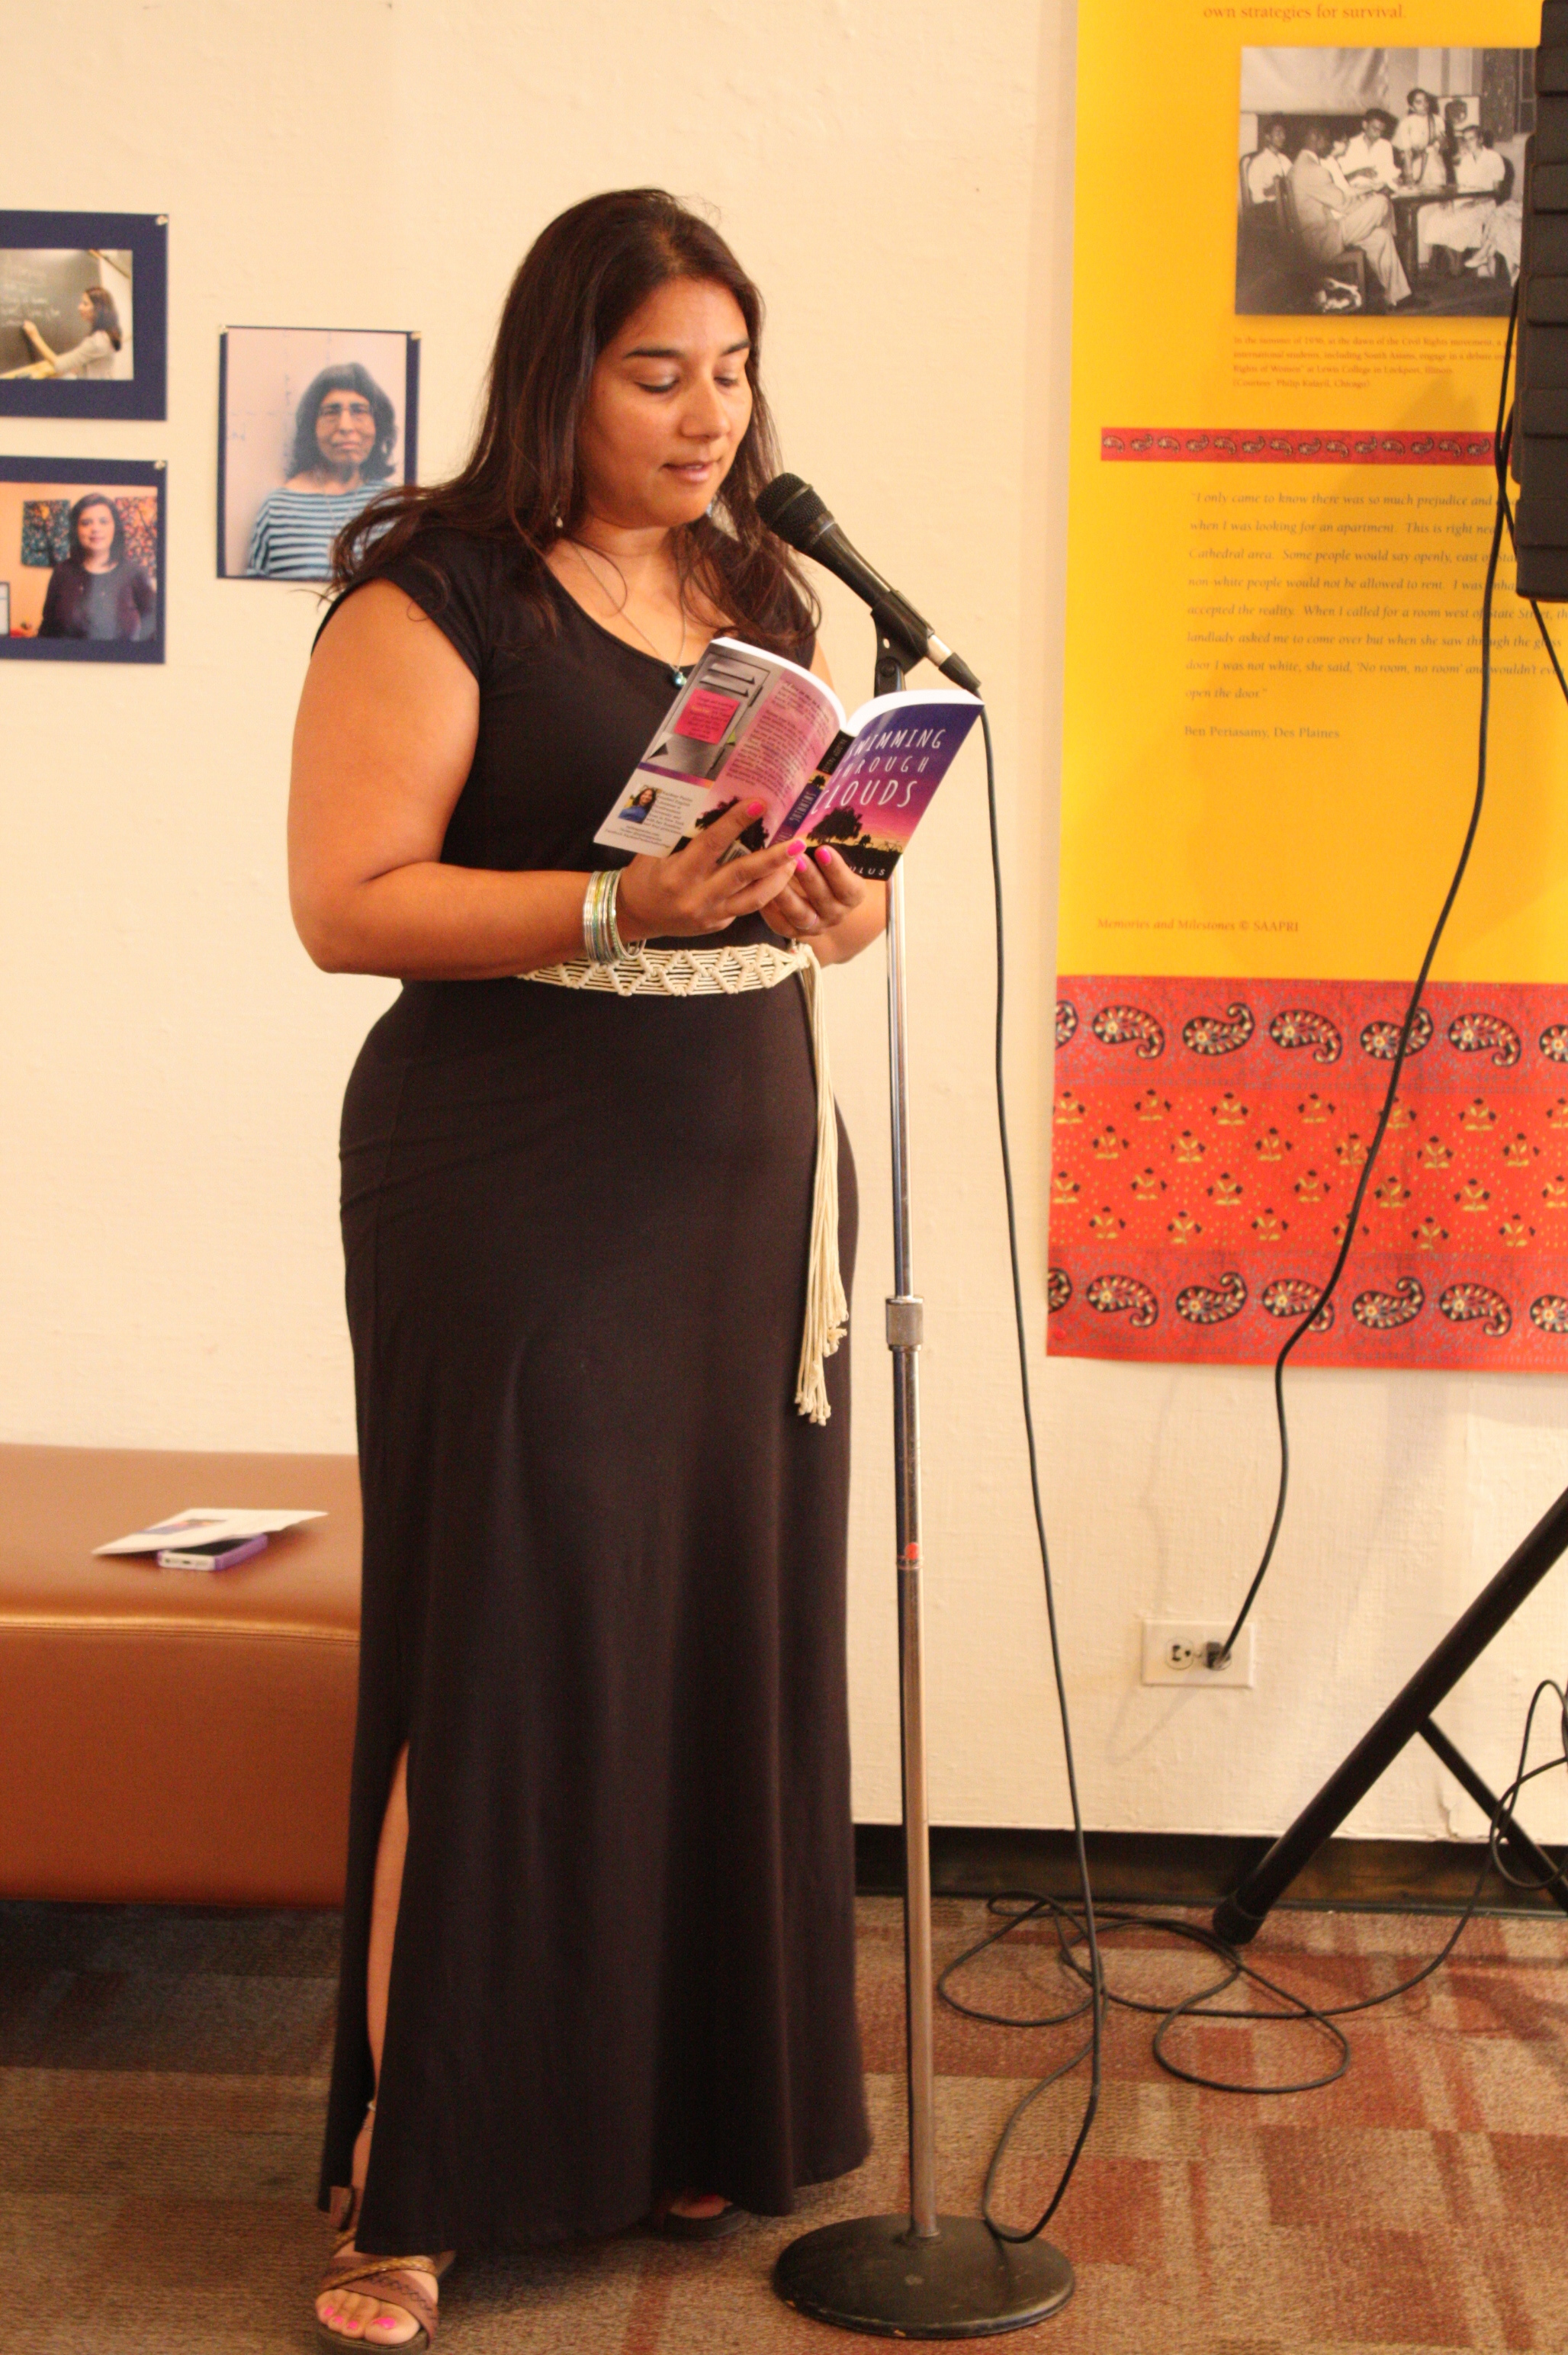 """Rajdeep Paulus reading from """"Swimming Through Clouds"""" at the opening night reception"""